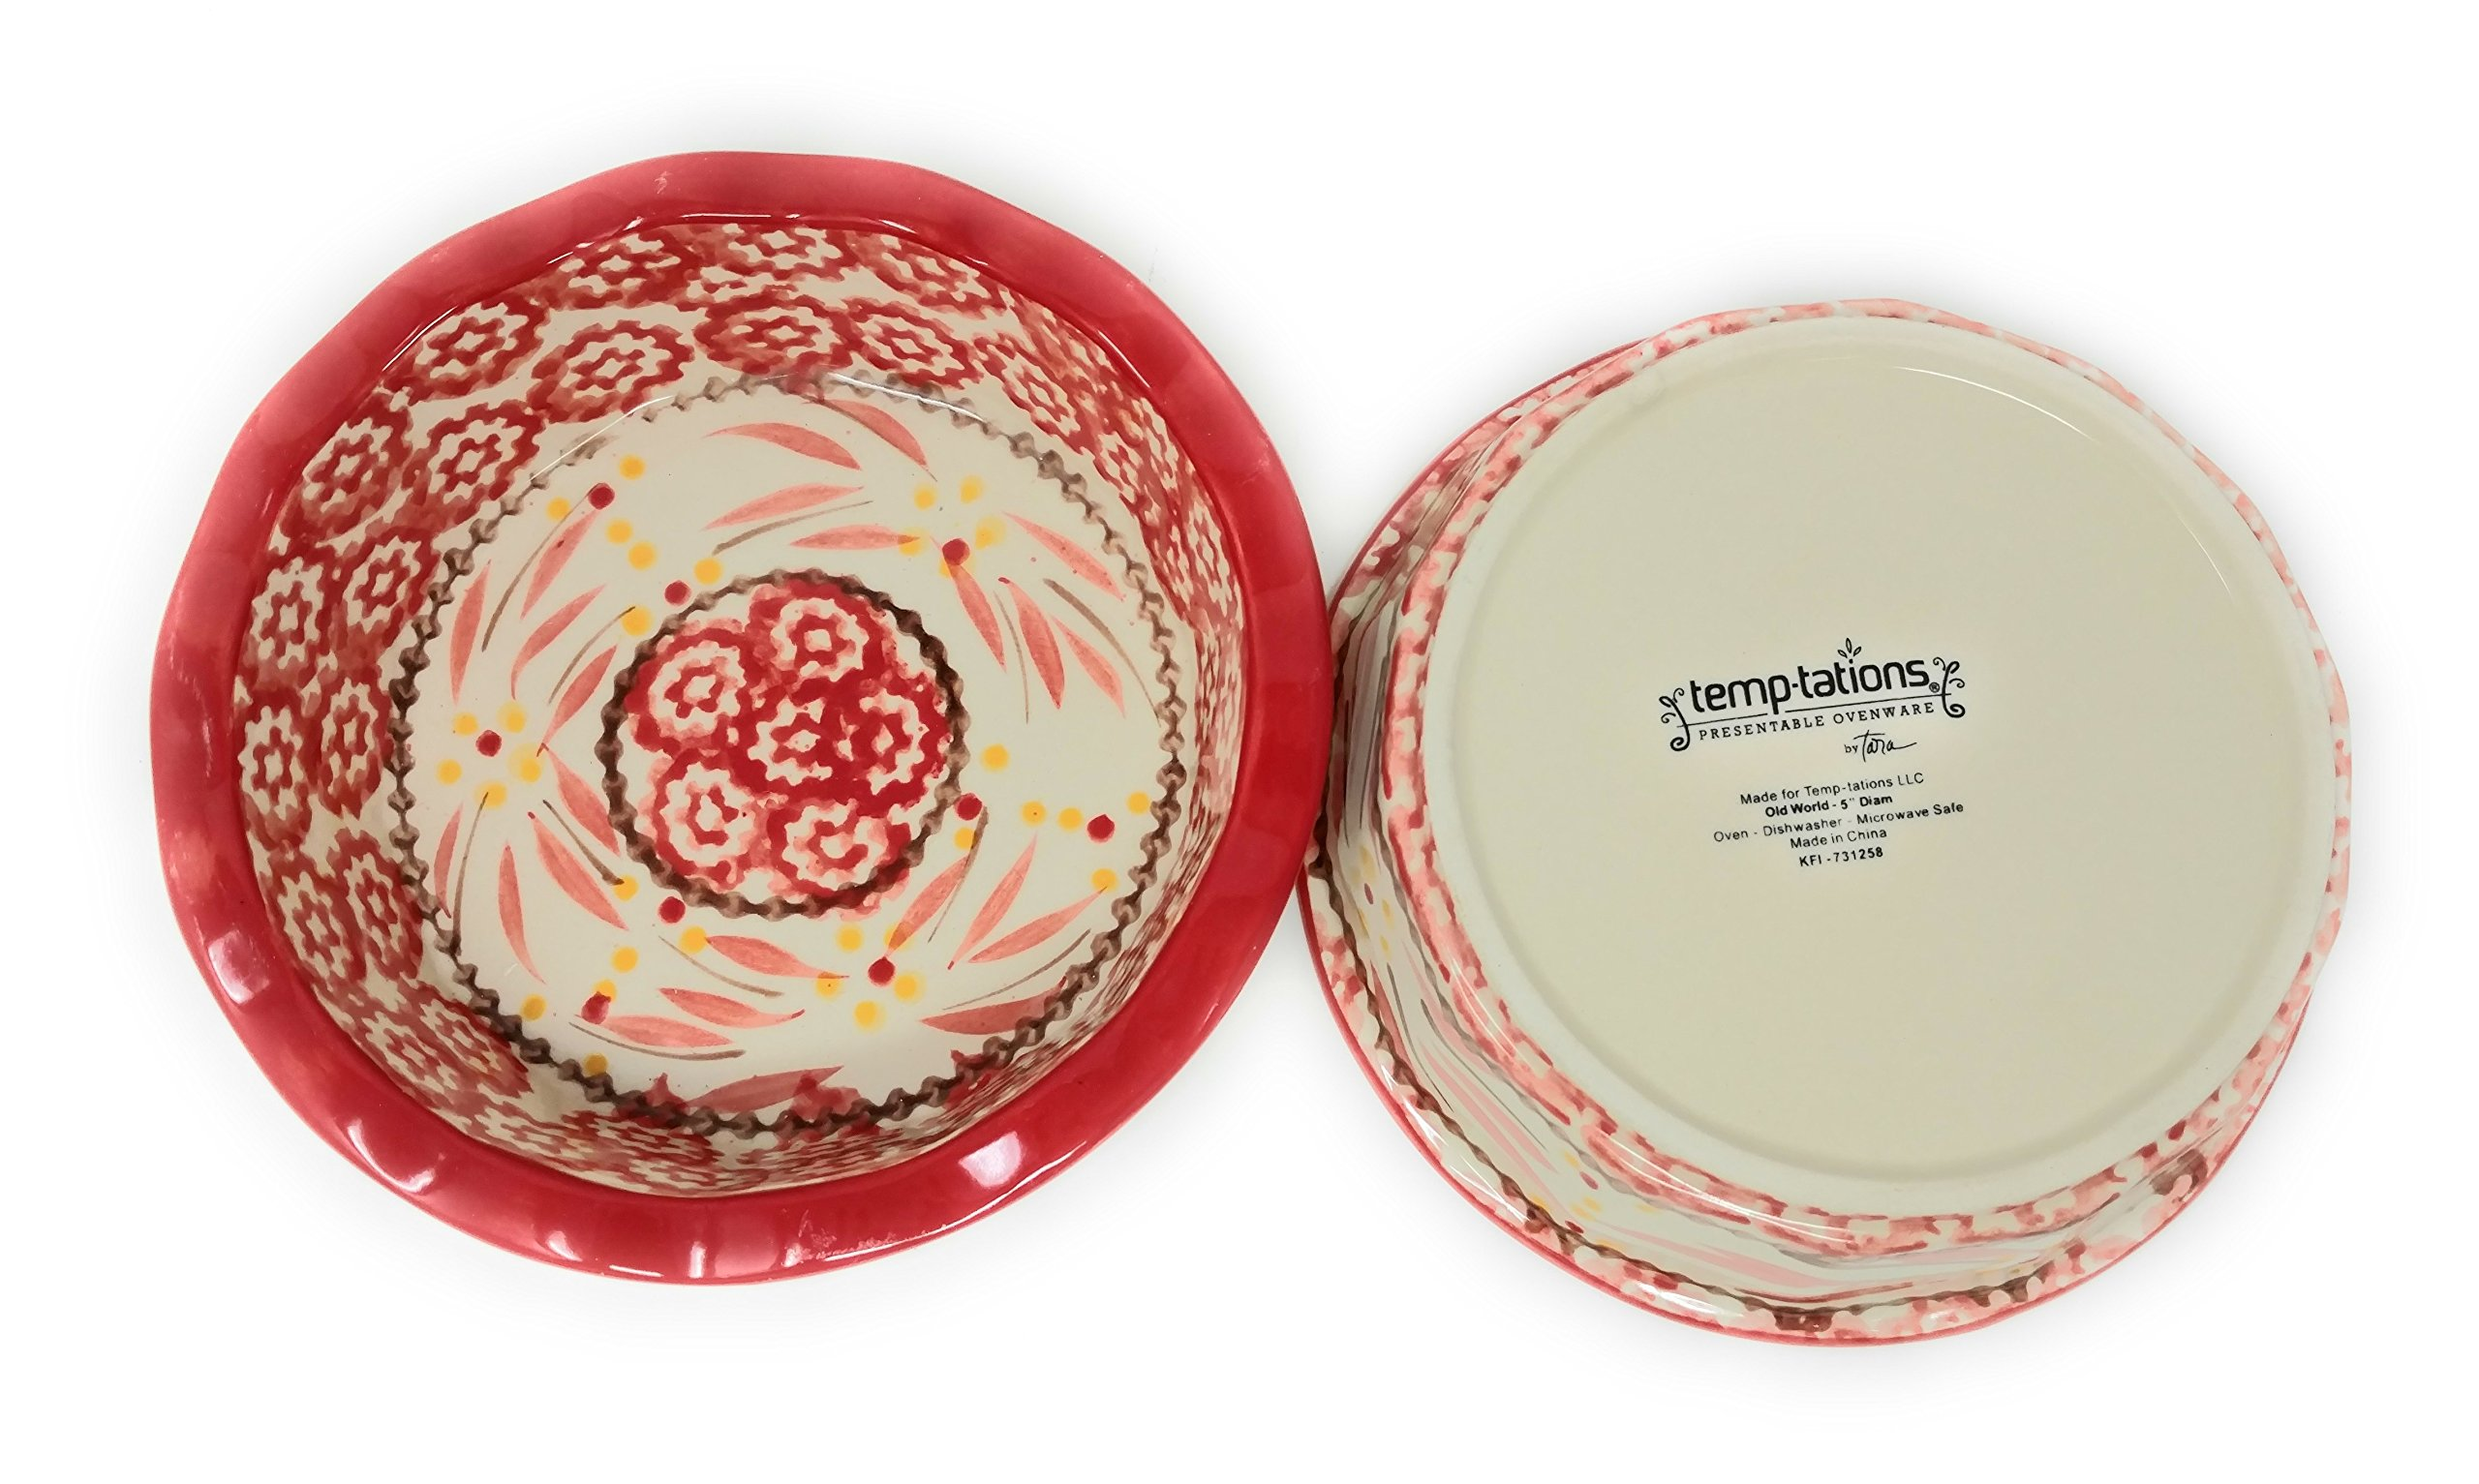 Temp-tations Set of 2 Mini Pie Pans, Deep Dish 5.75'' x 1.75'' each - Stoneware (Old World Red) by Temptations (Image #5)